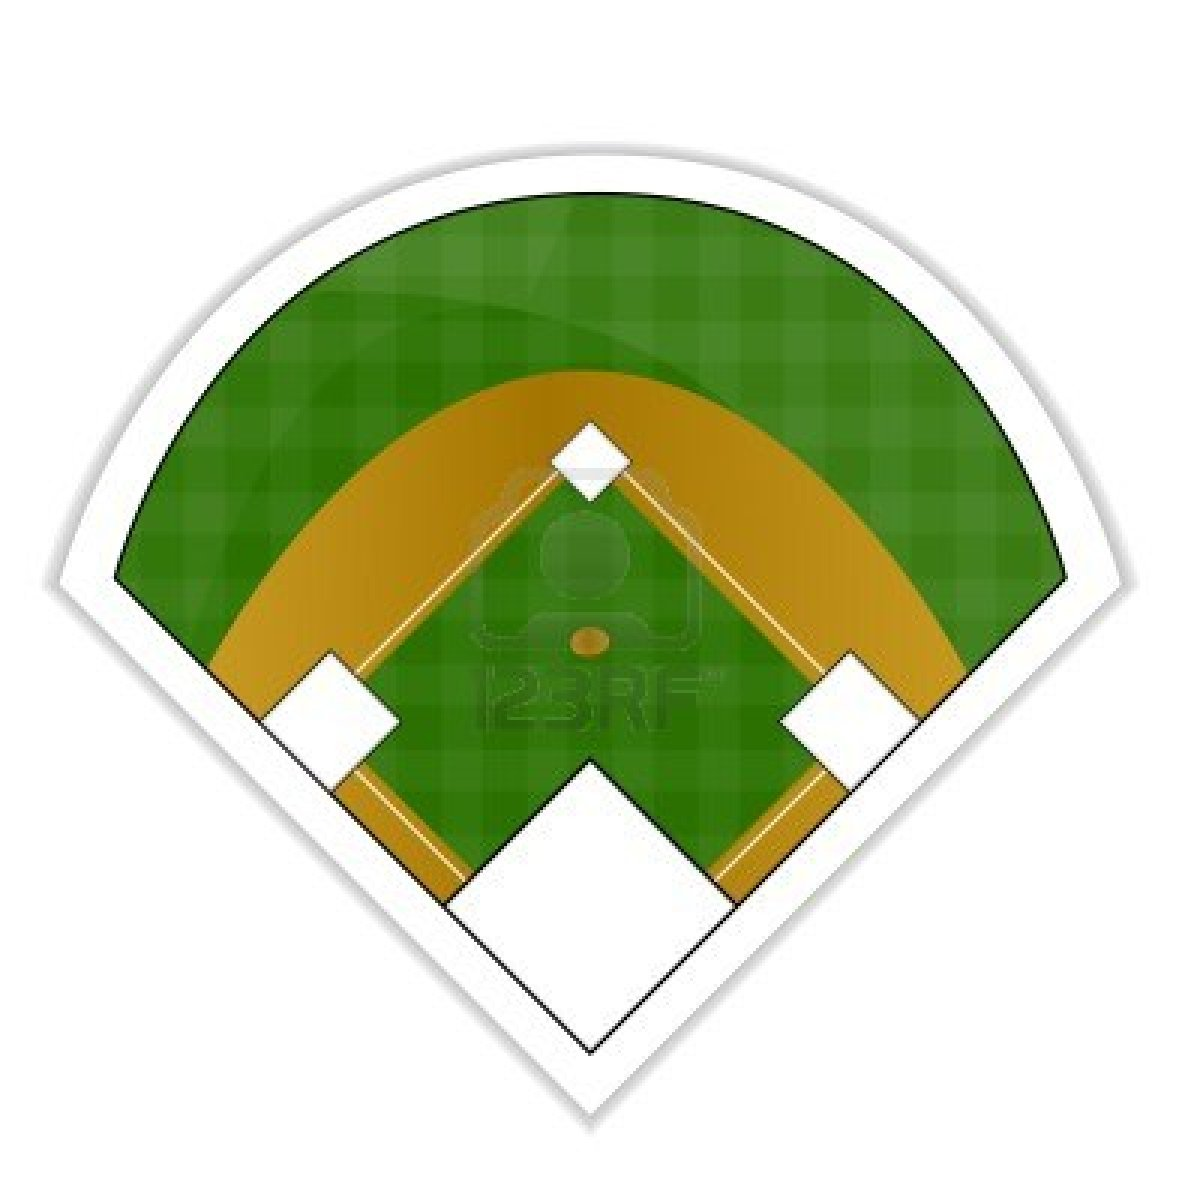 Baseballinfielders mages clipart freeuse stock Free Baseball Field, Download Free Clip Art, Free Clip Art on ... freeuse stock